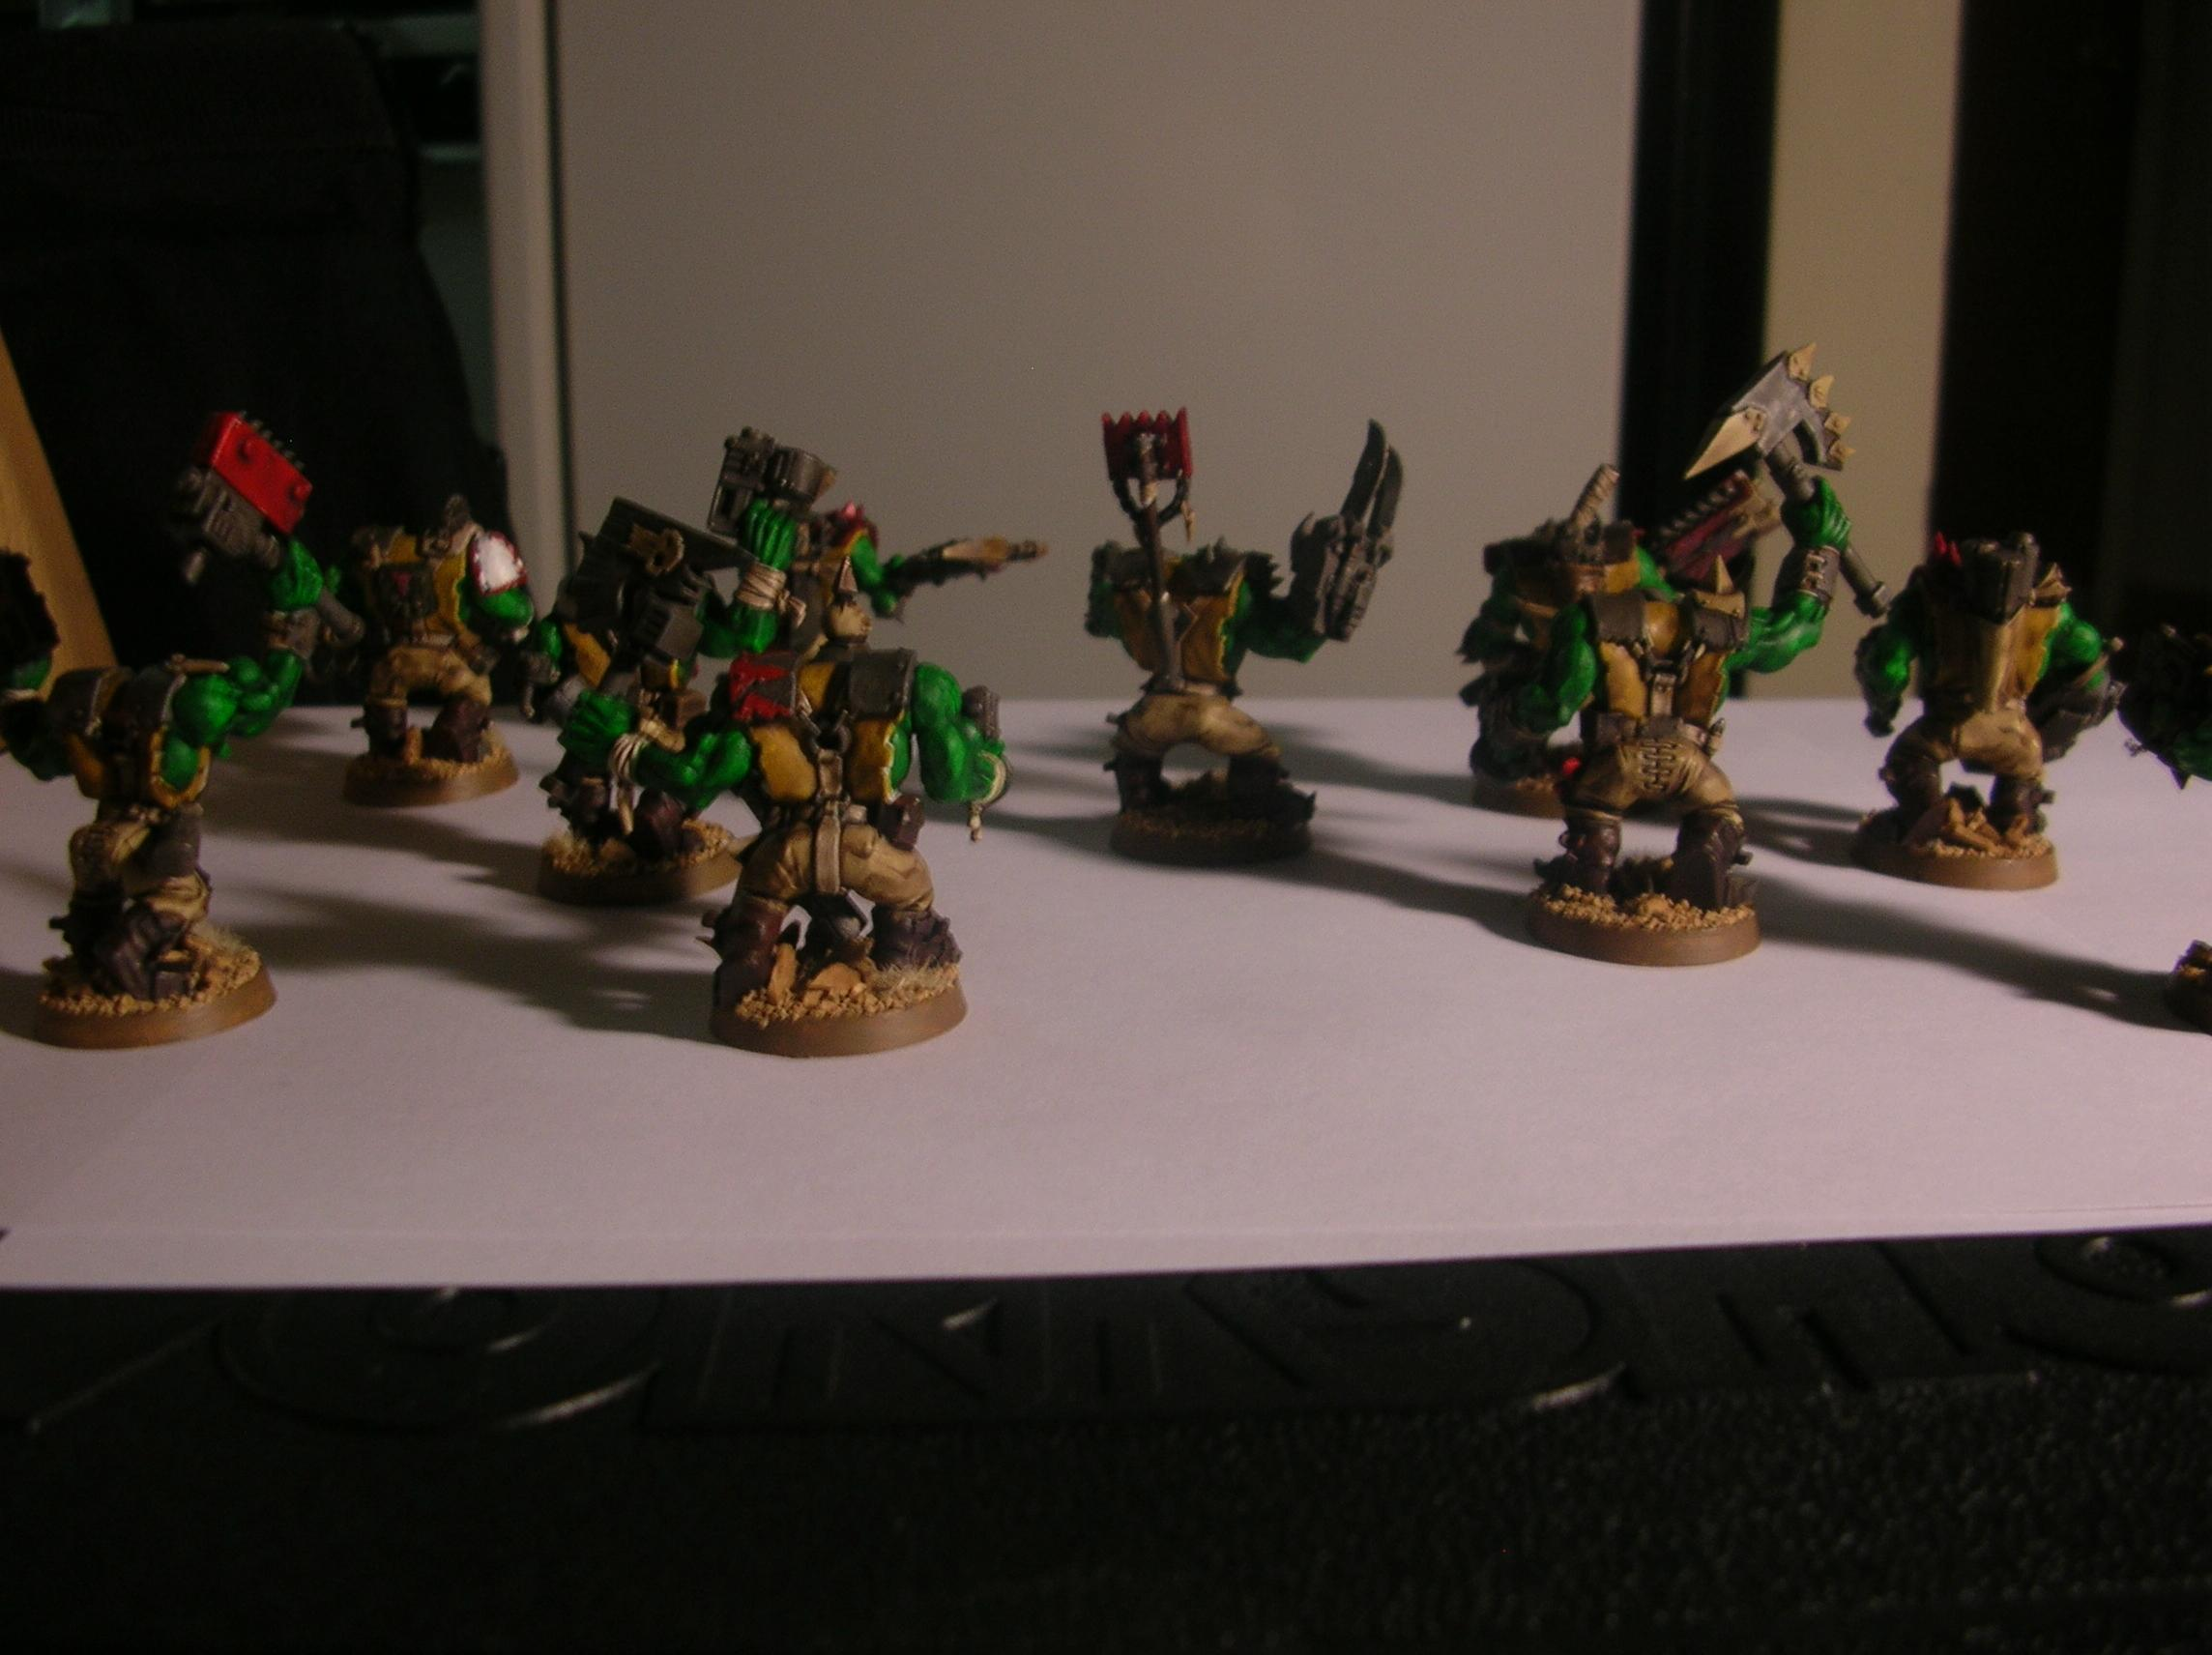 Assault On Black Reach, Big Choppa, Desert, Dezz'urt Ratz, Nob, Orks, Painboy, Plastic, Power Klaw, Rats